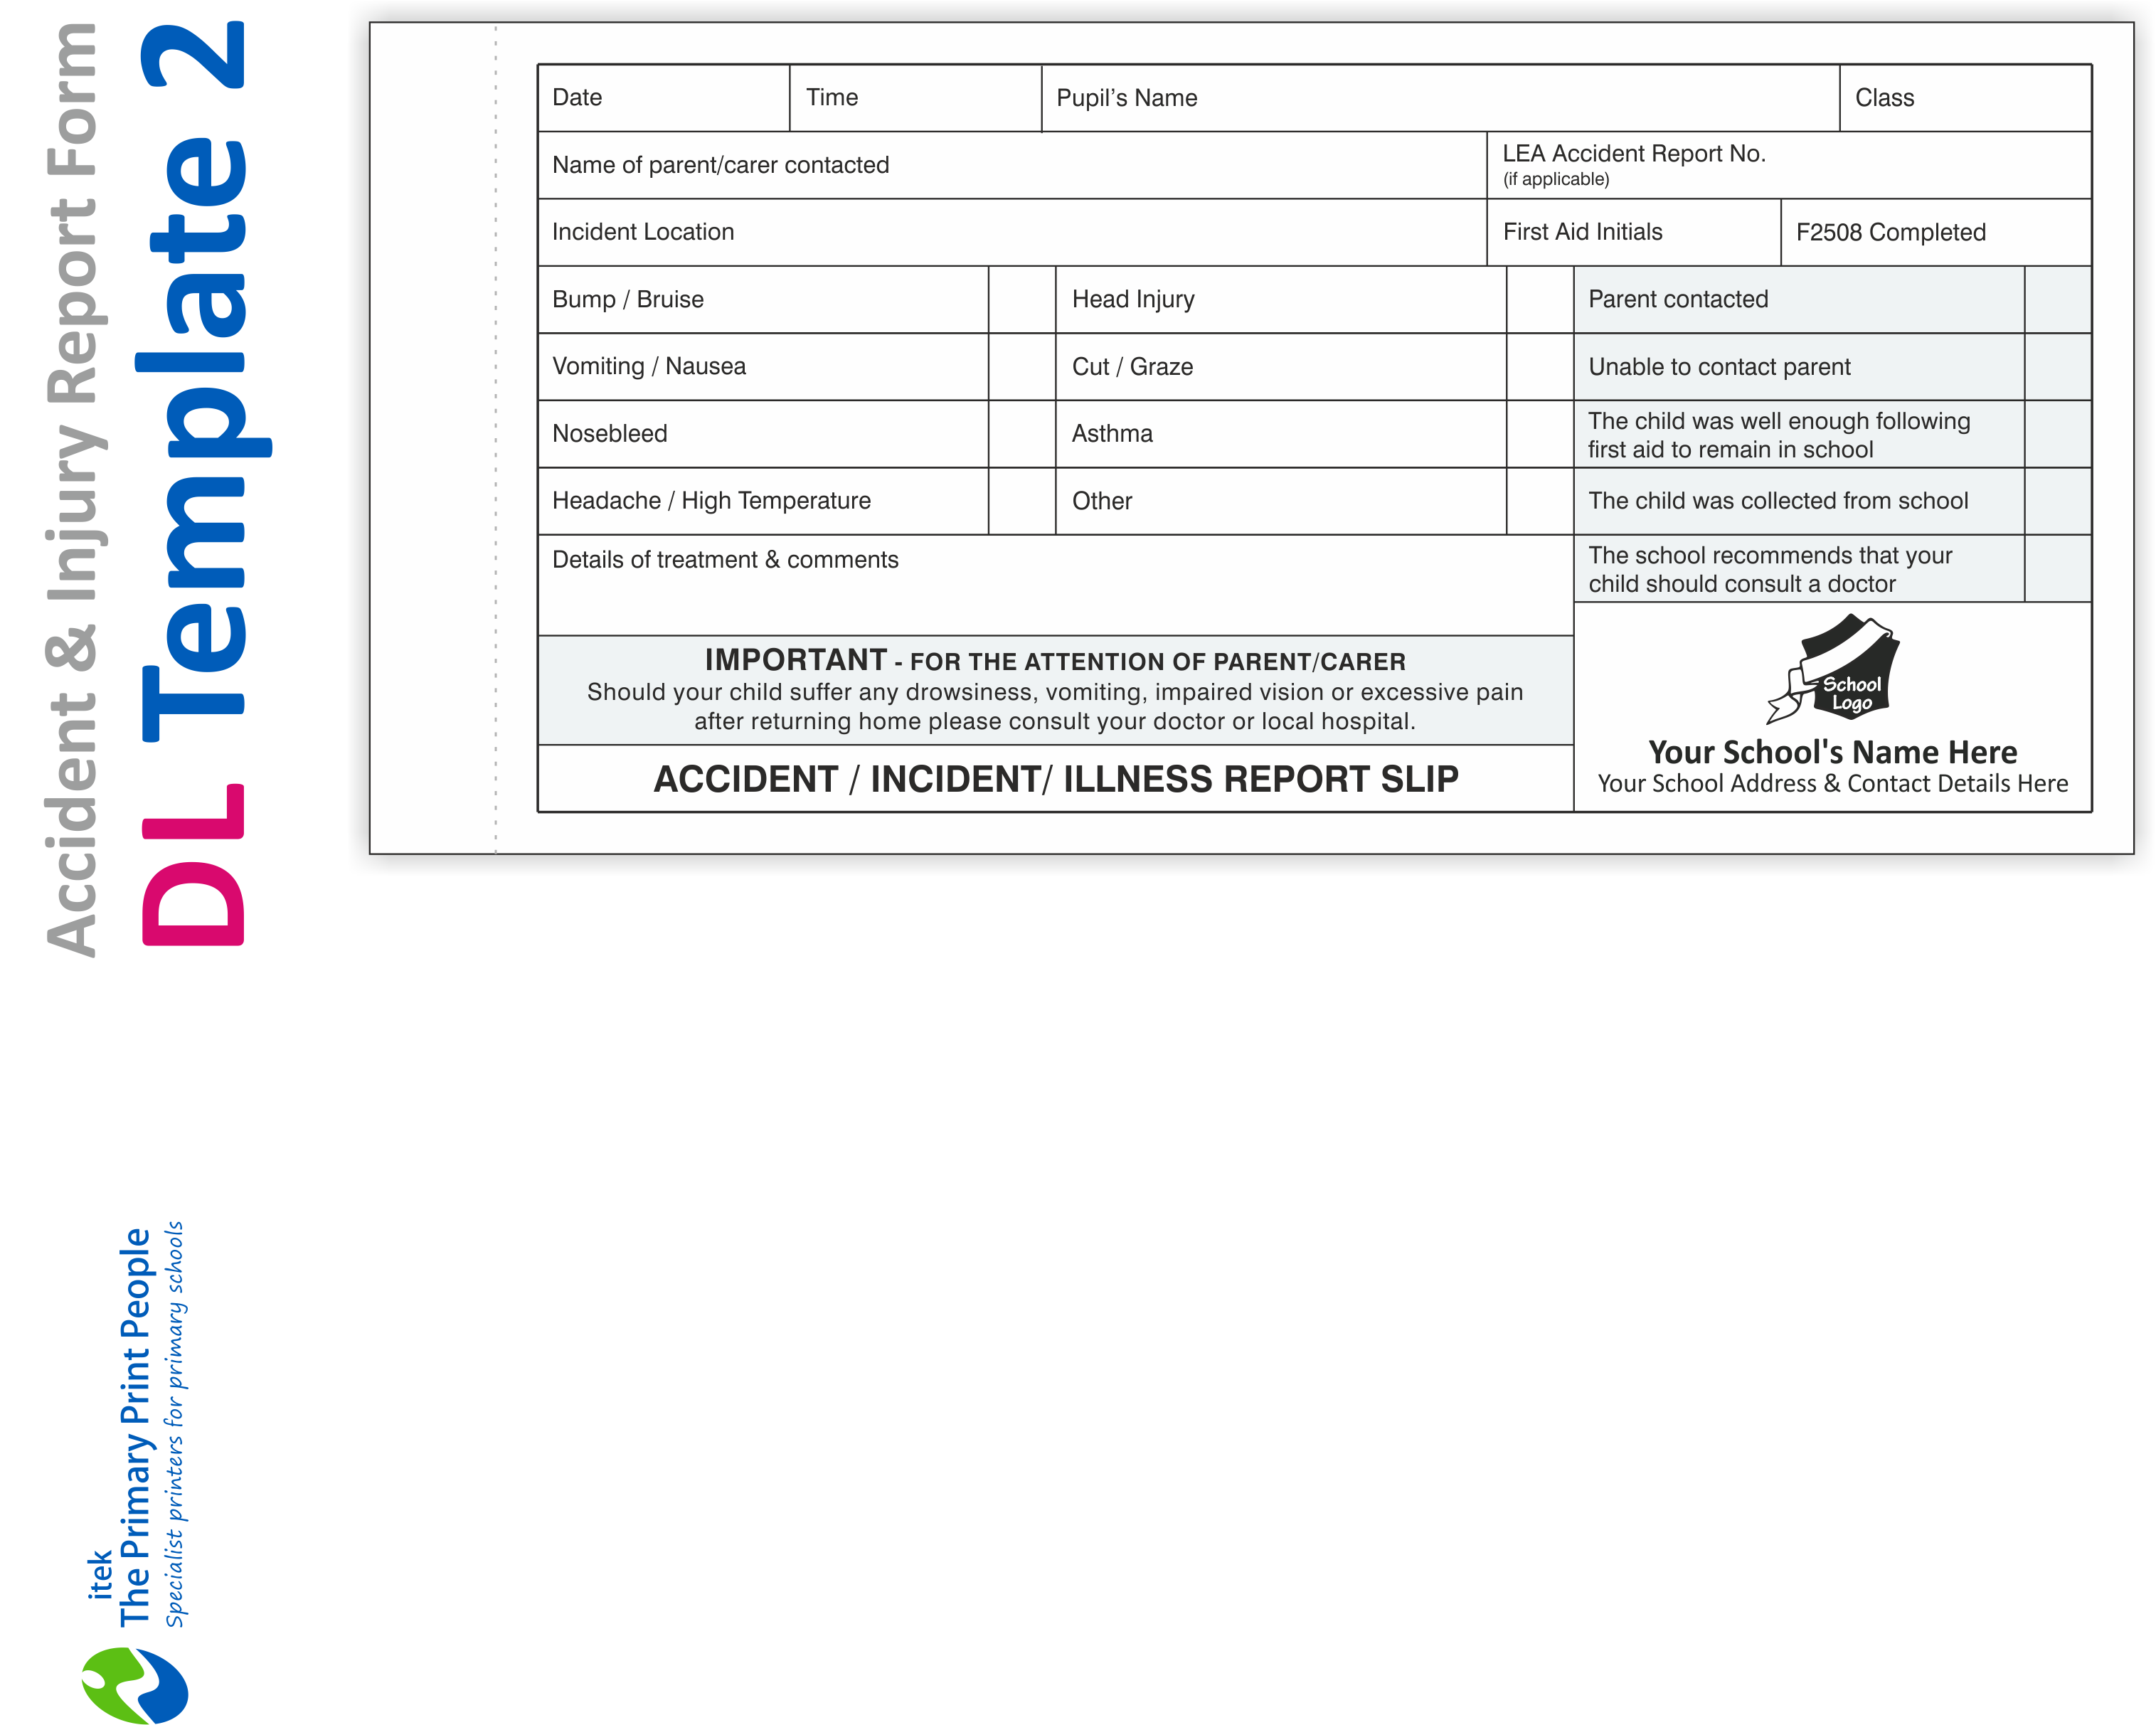 Accident and Injury Form DL Template 2 on